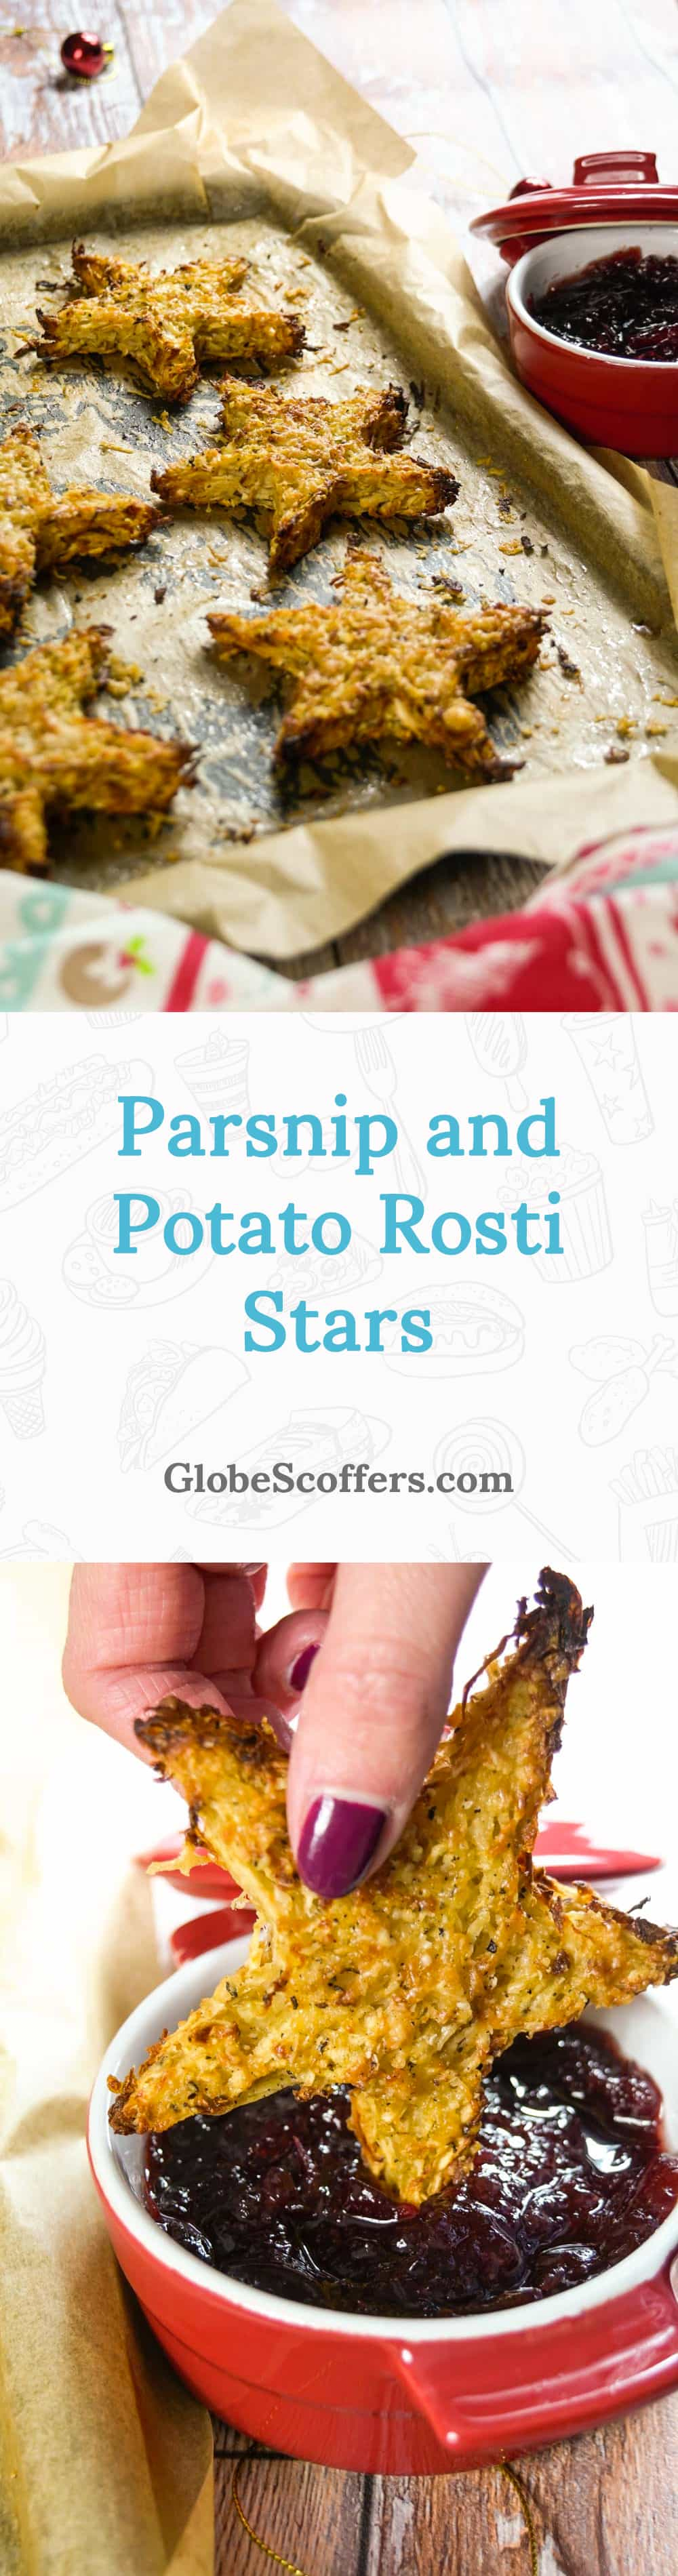 Parsnip and Potato Rosti Stars